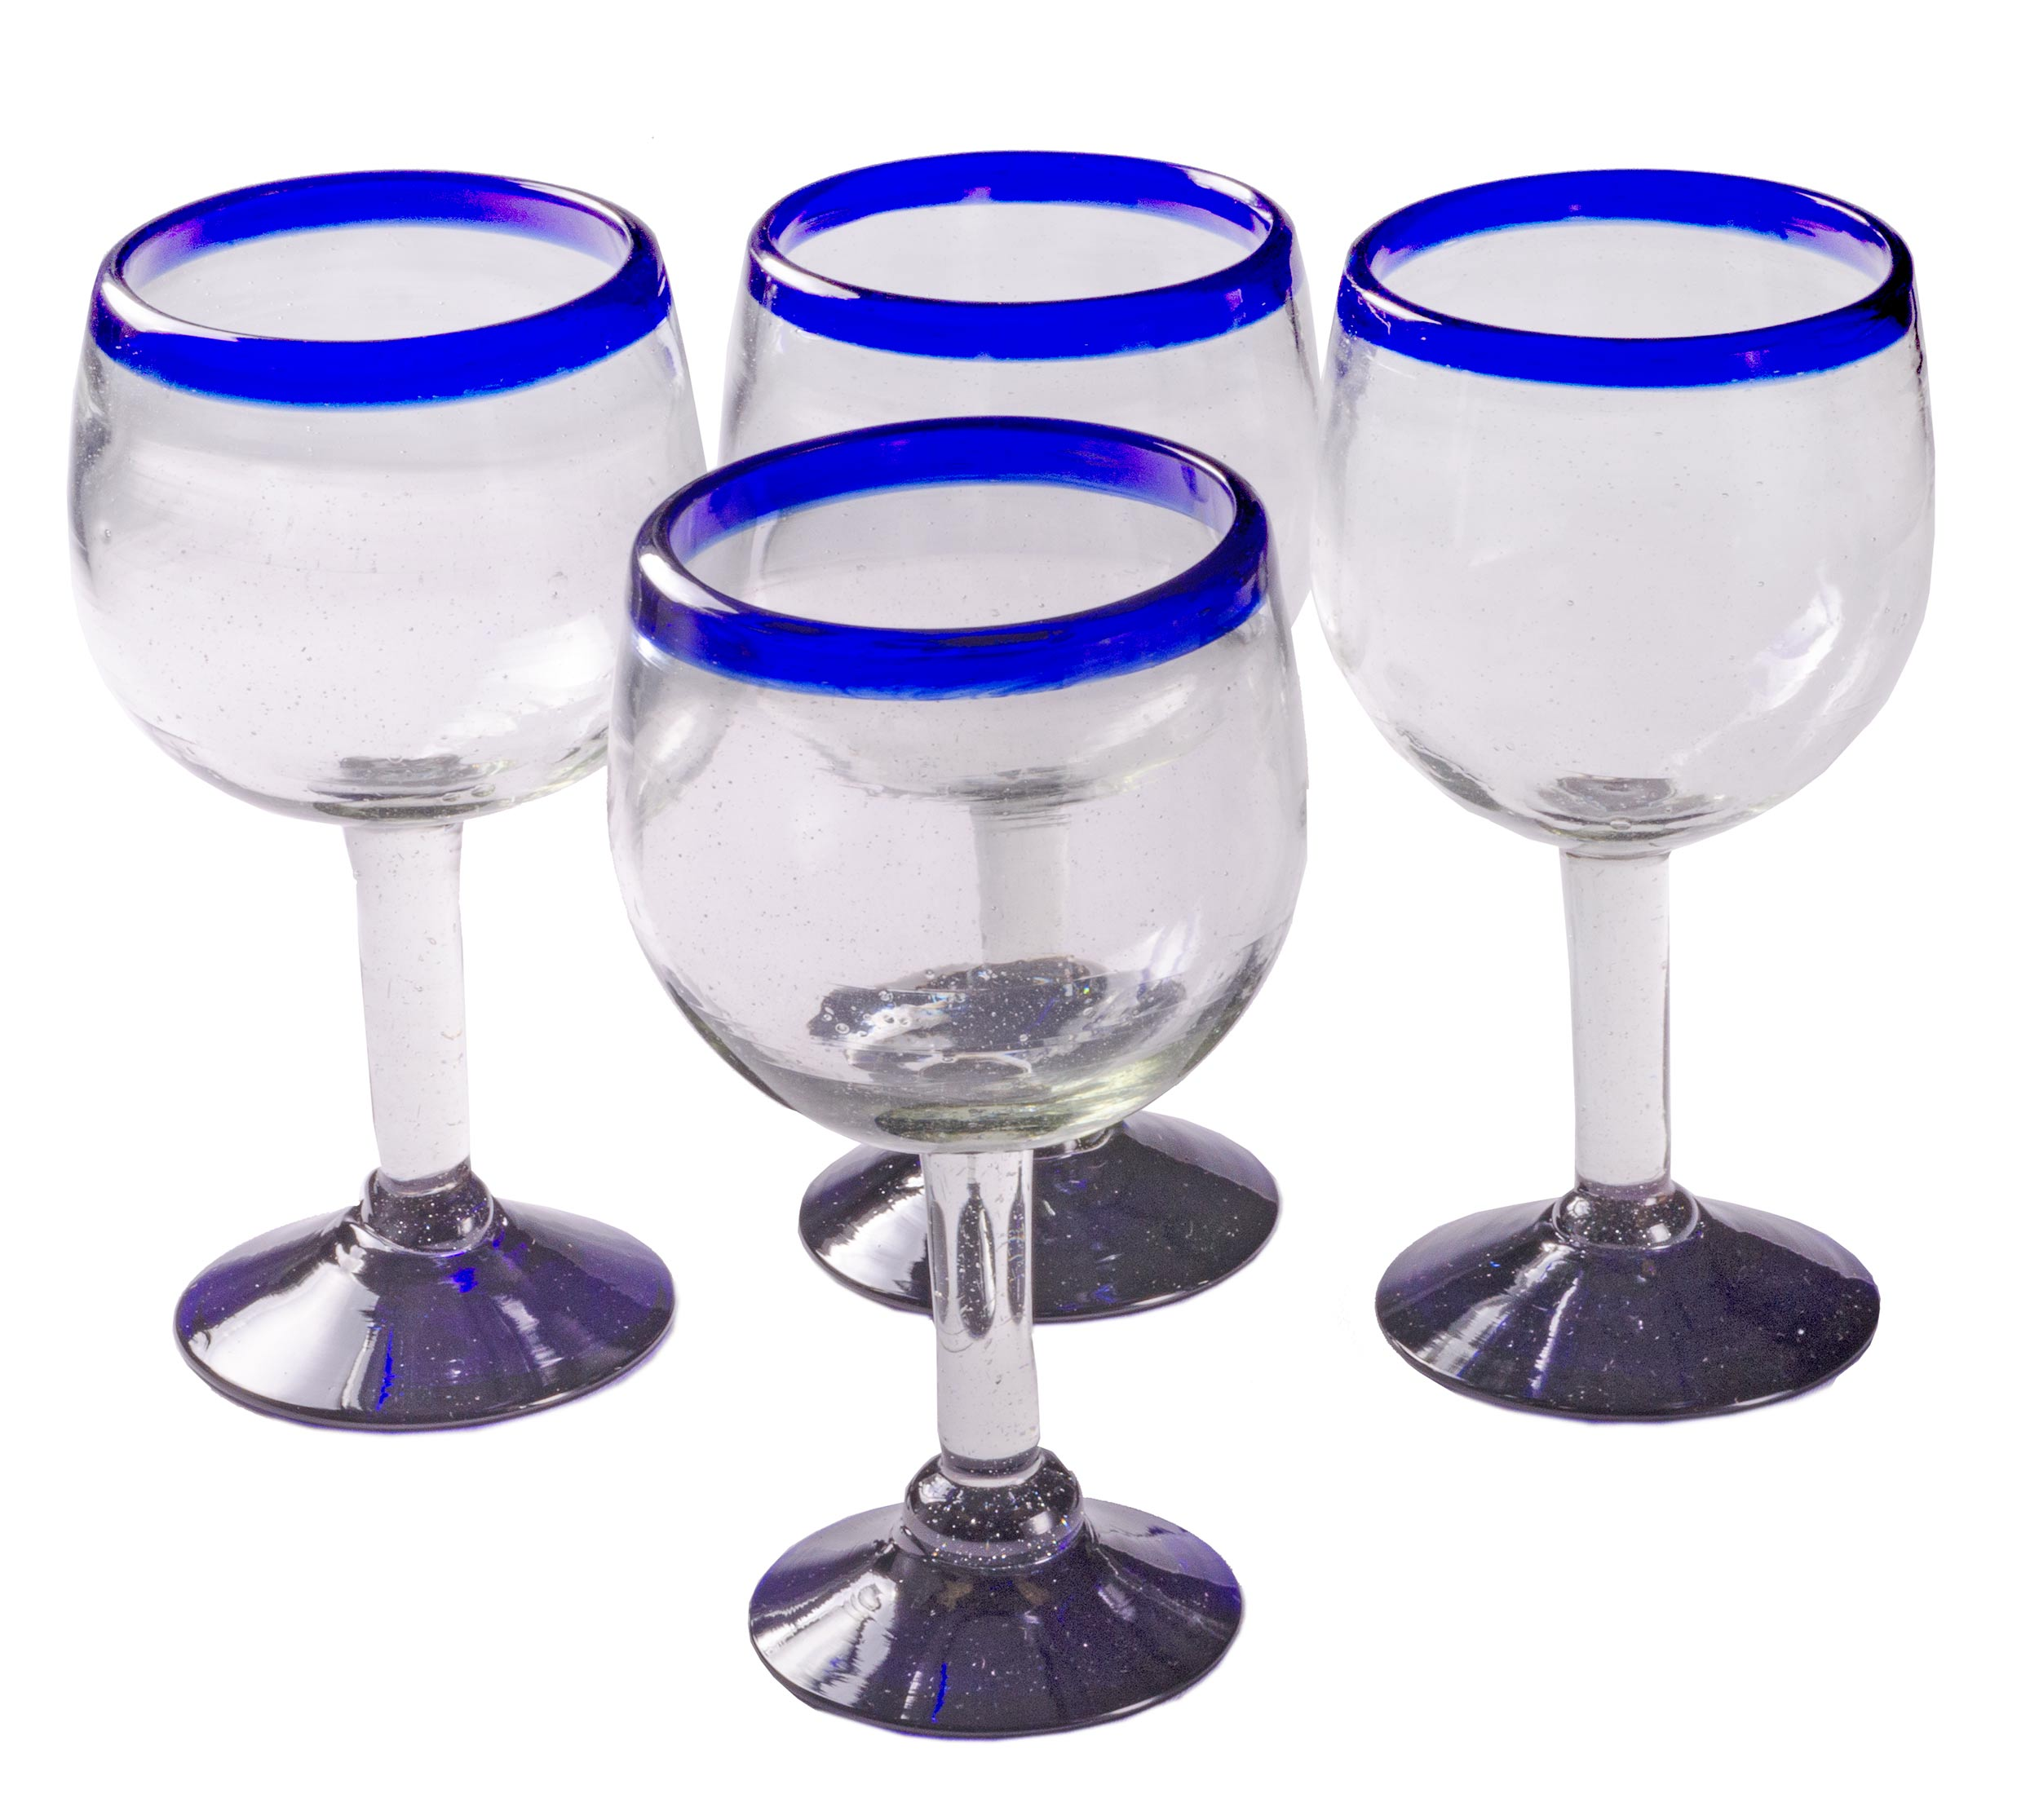 Orion Cobalt Rim 16 oz Large Wine Glass - Set of 4 - Orion's Table Mexican Glassware